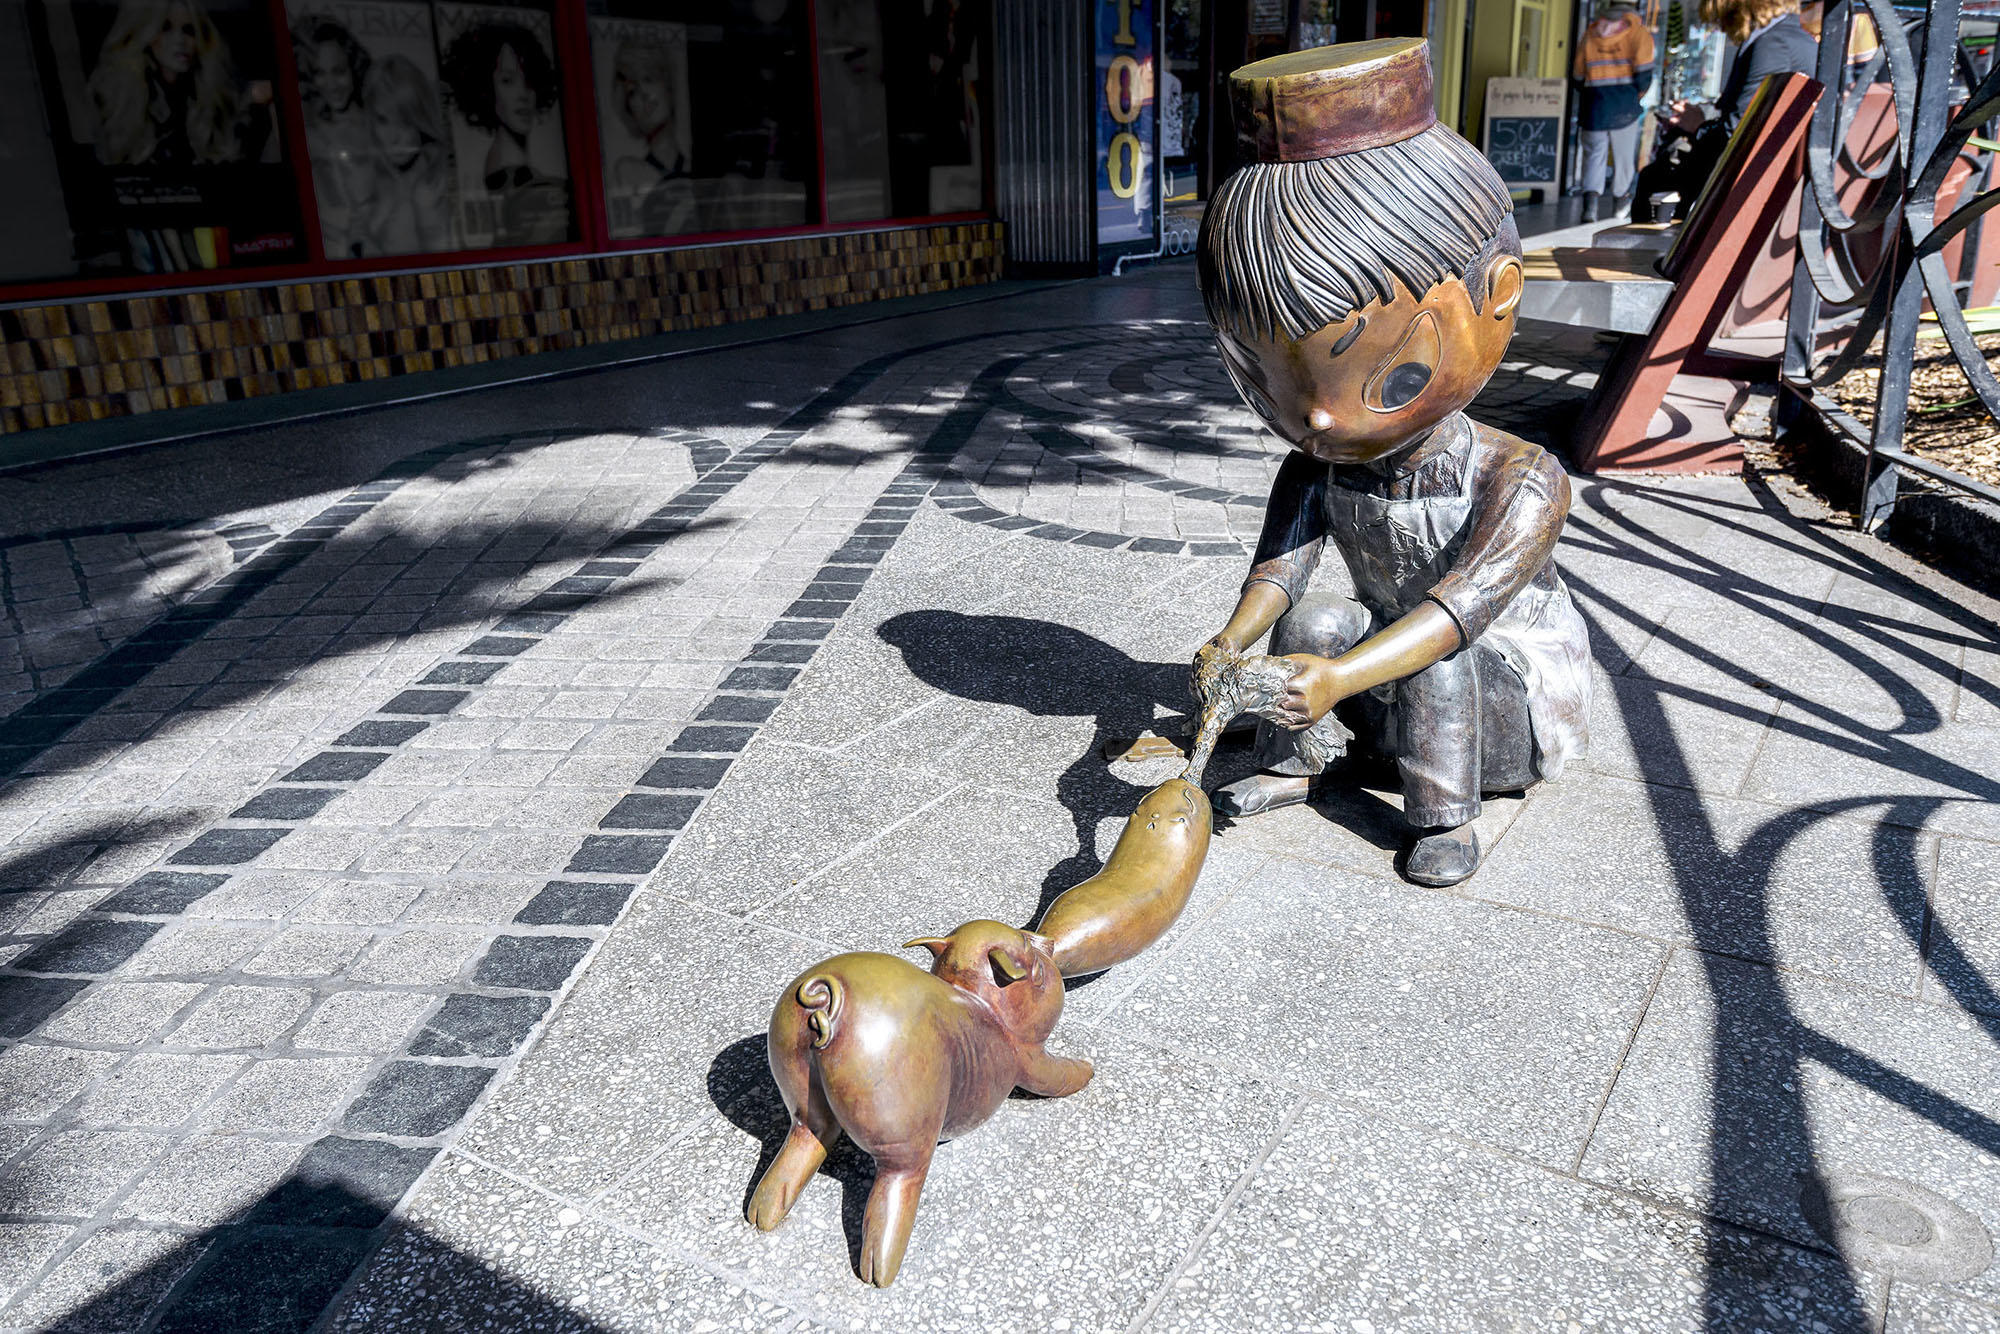 Bronze figurines set in streetscape of a boy in an apron wrestling a turnip from a piglet's mouth